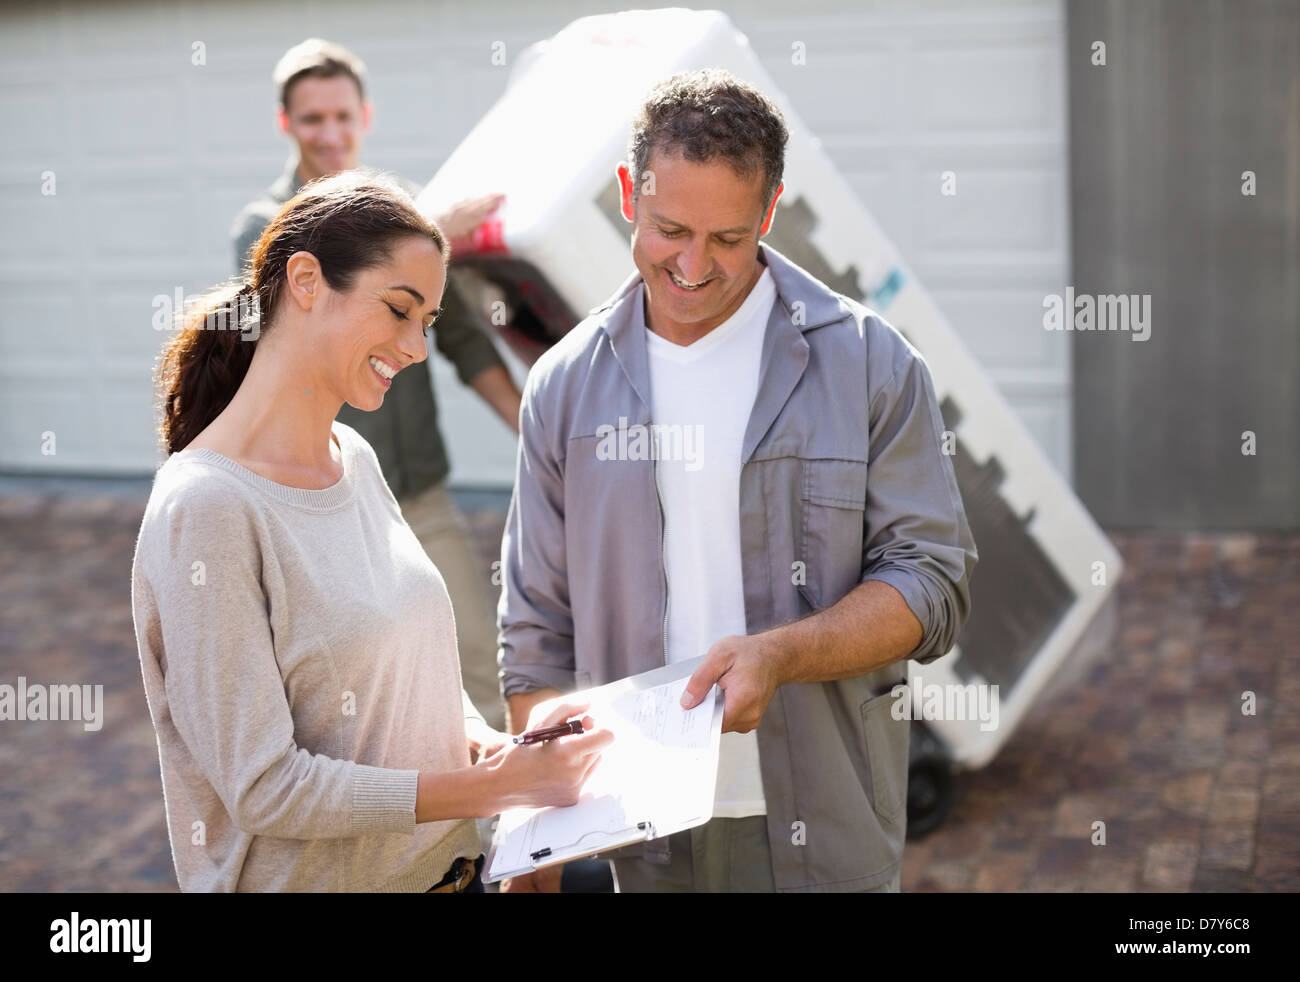 Woman signing for delivery in driveway - Stock Image